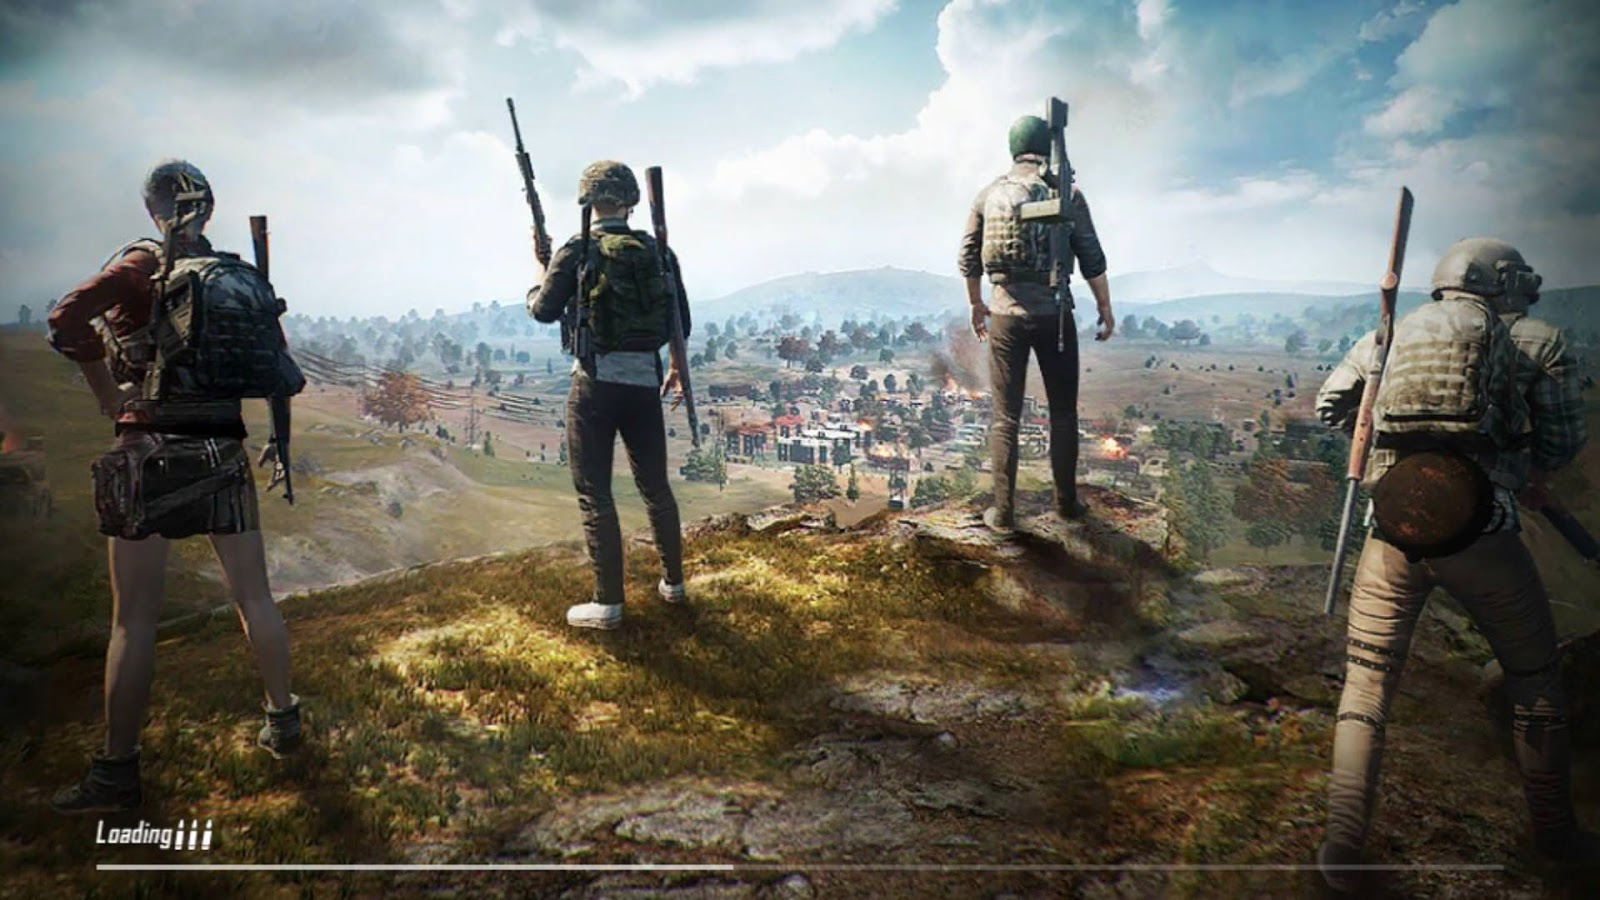 Pubg The Real Battle Royale Pubg Mobile Tips How To Win